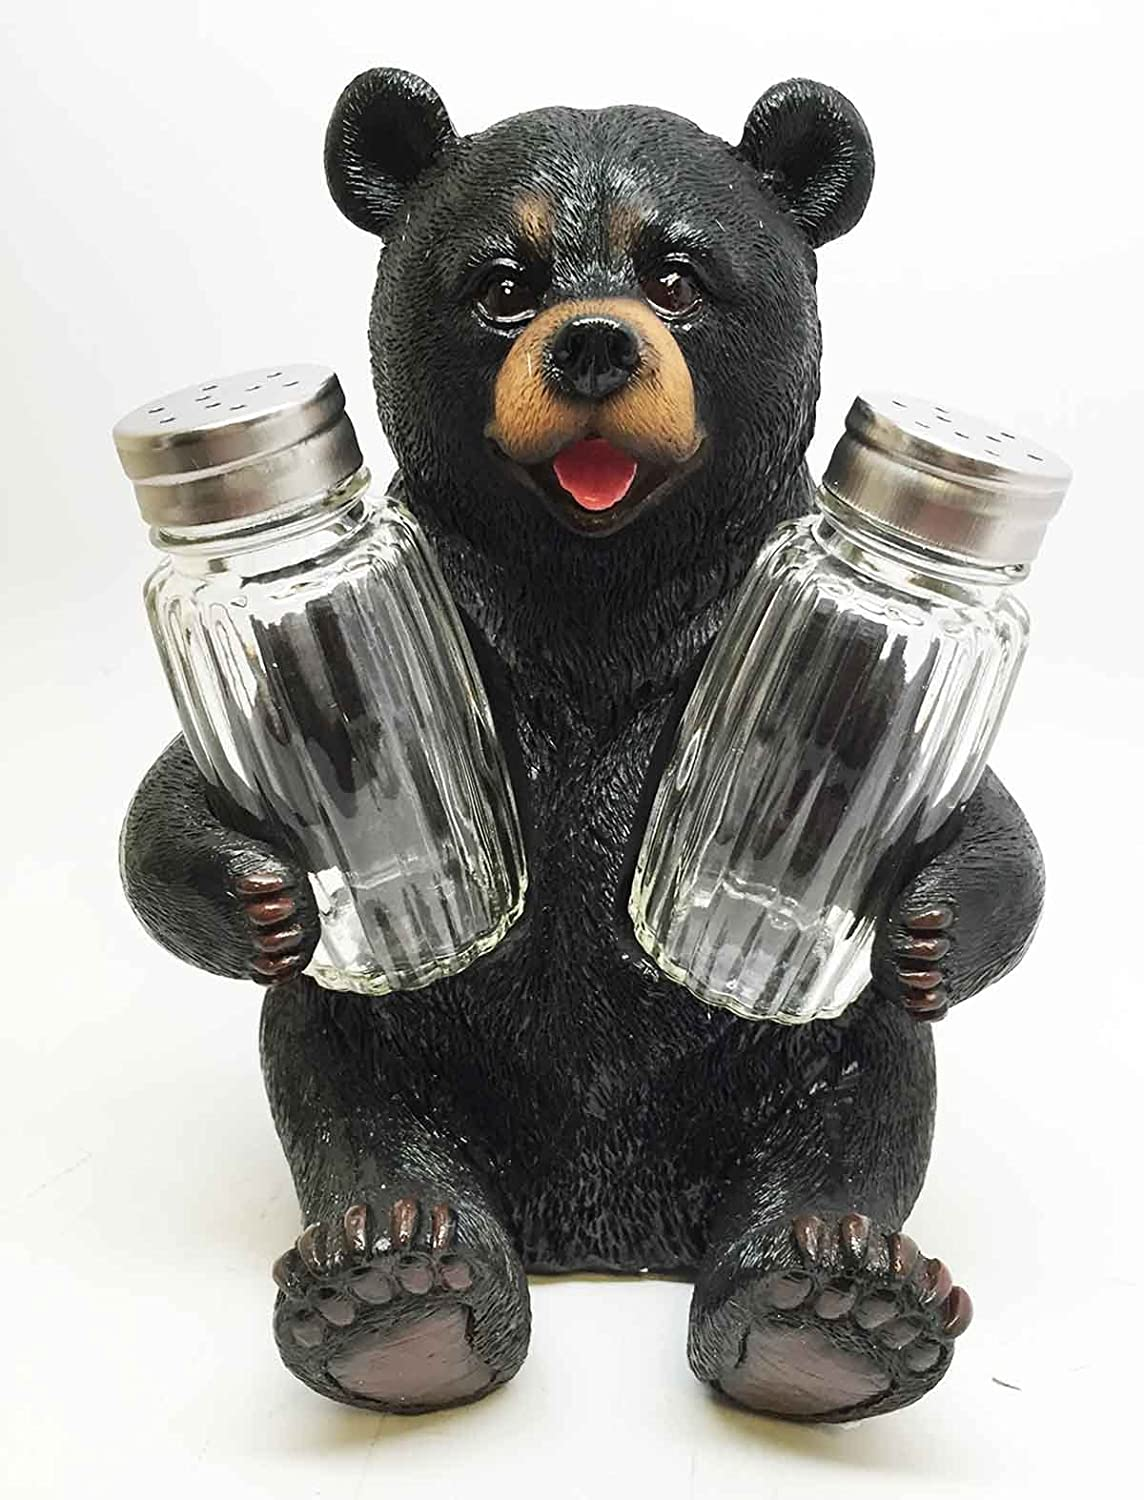 Amazon.com: Cute Black Bear Hugging Salt Pepper Shakers ...